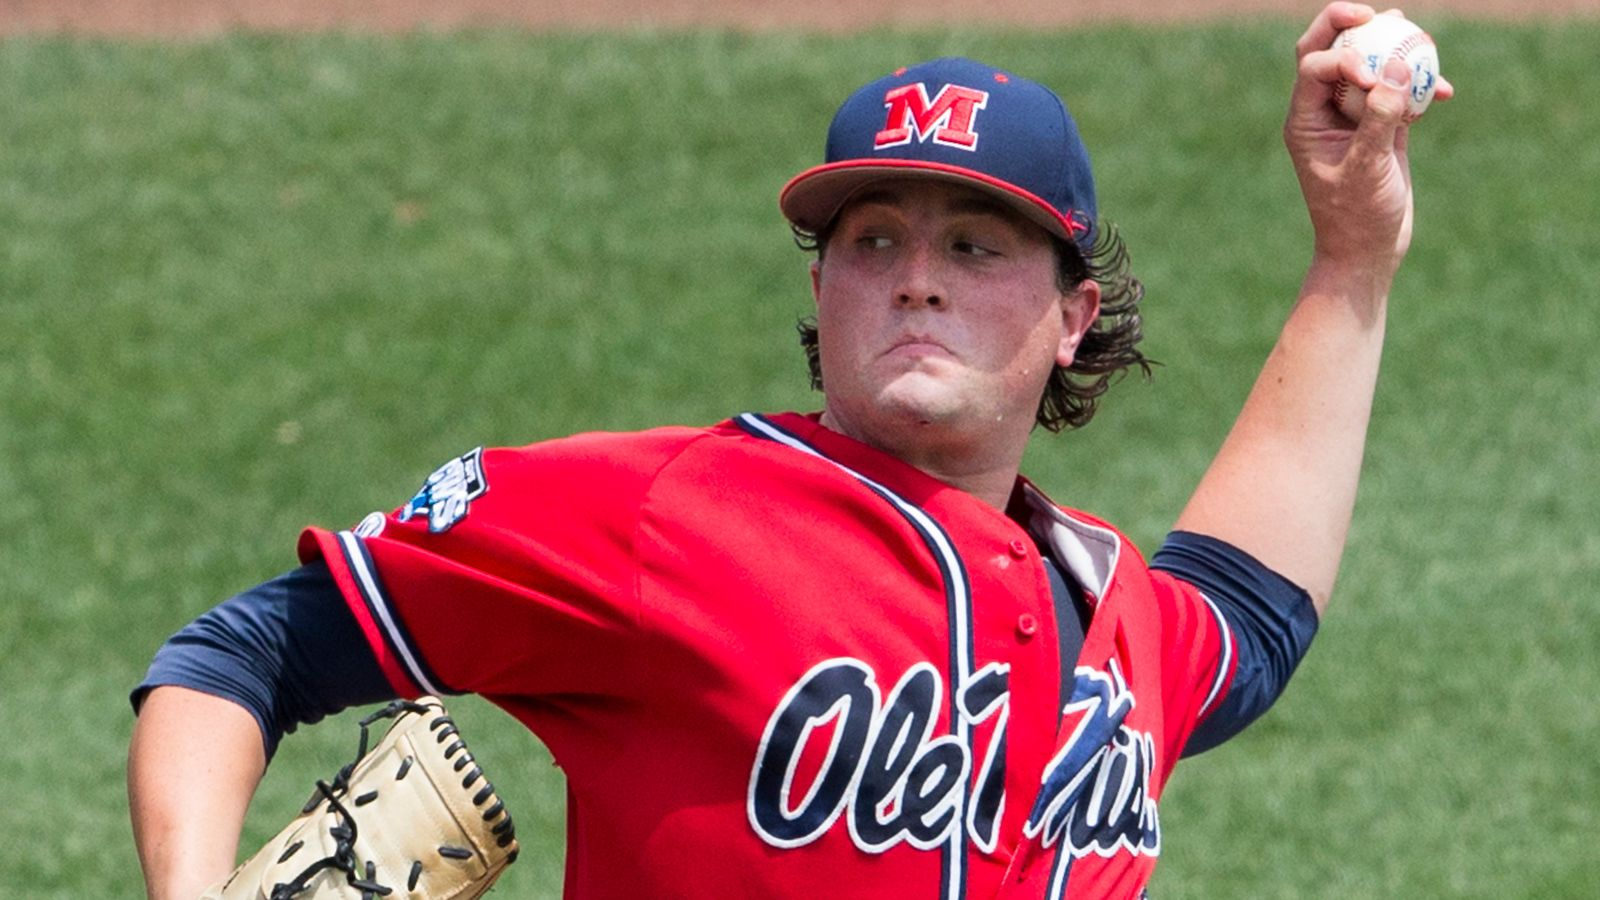 Ole Miss falls to UCF in walk-off